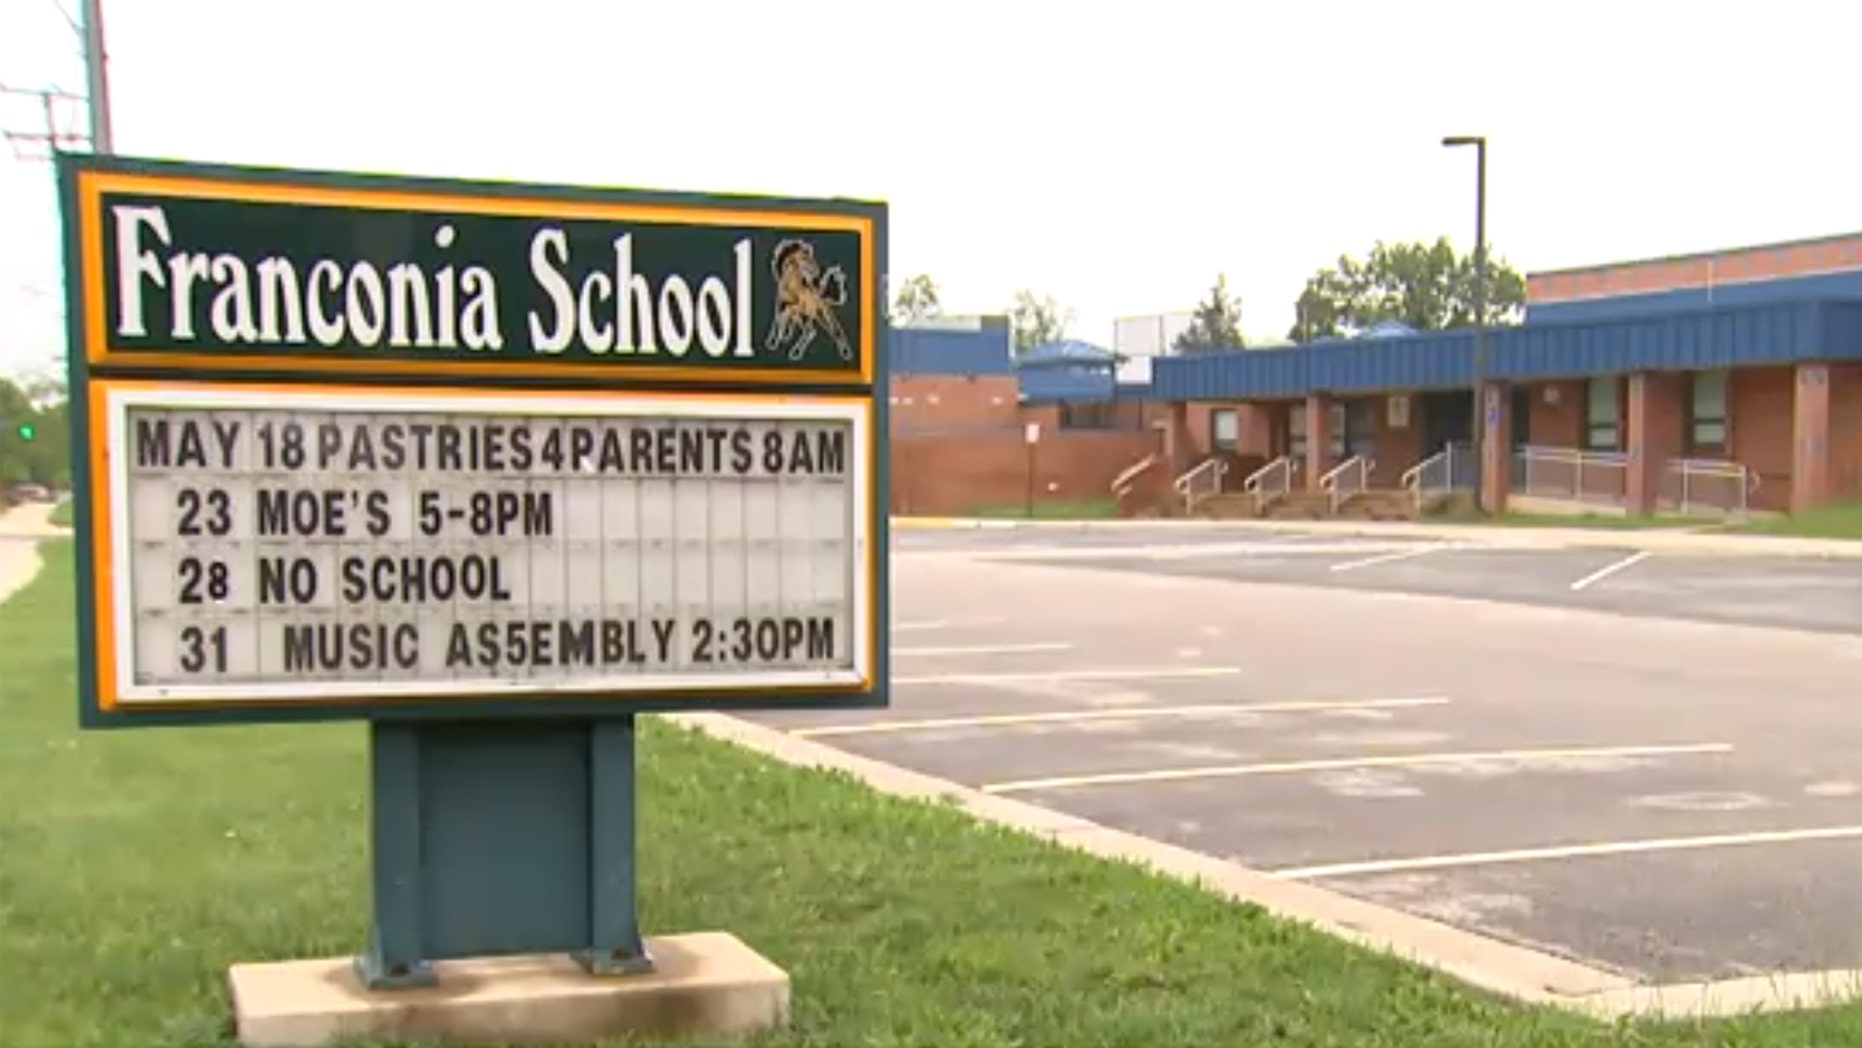 A 9-year-old boy died after he was crushed by a motorized room partition at Franconia Elementary School in Alexandria, Va. on Friday.